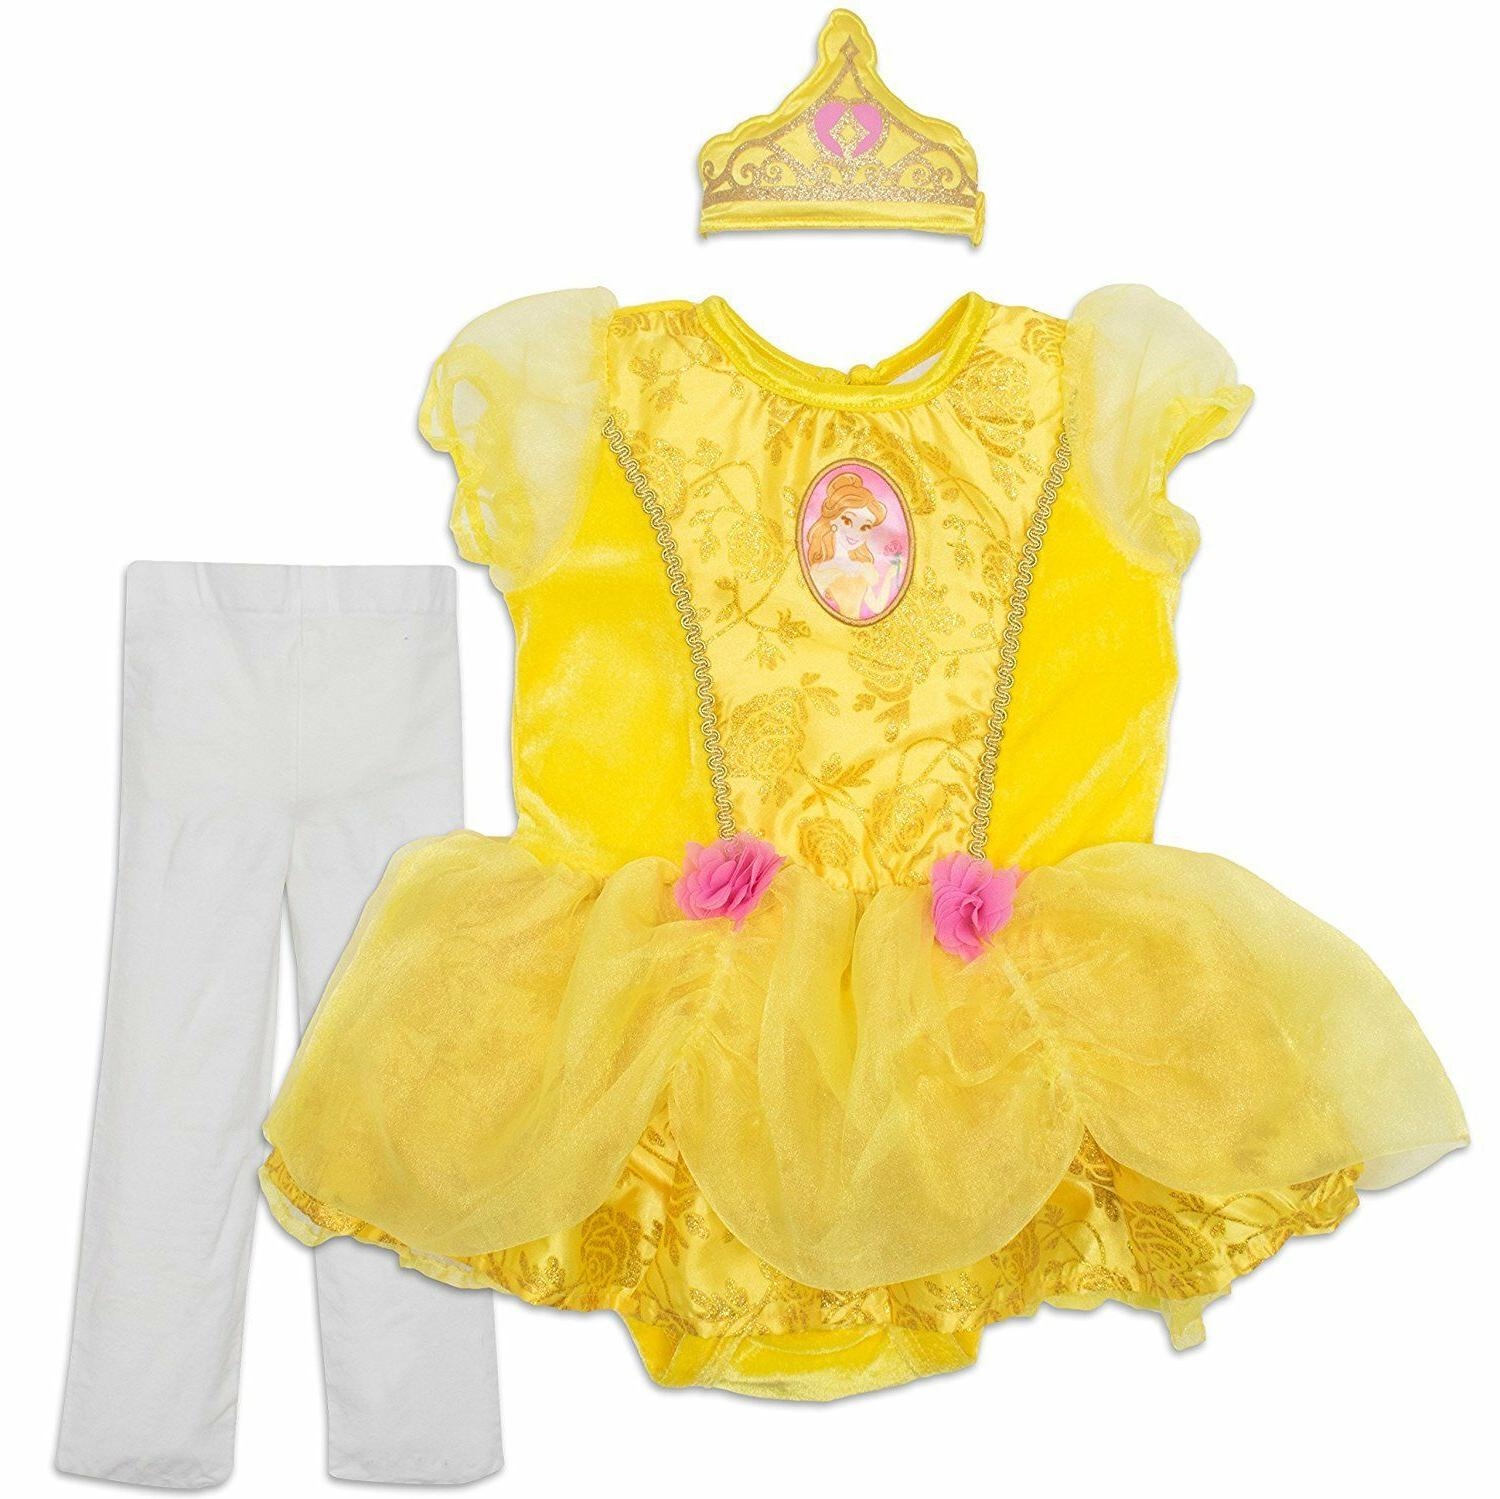 Disney Princess Belle Baby Girls' Costume Tutu Dress, Headba